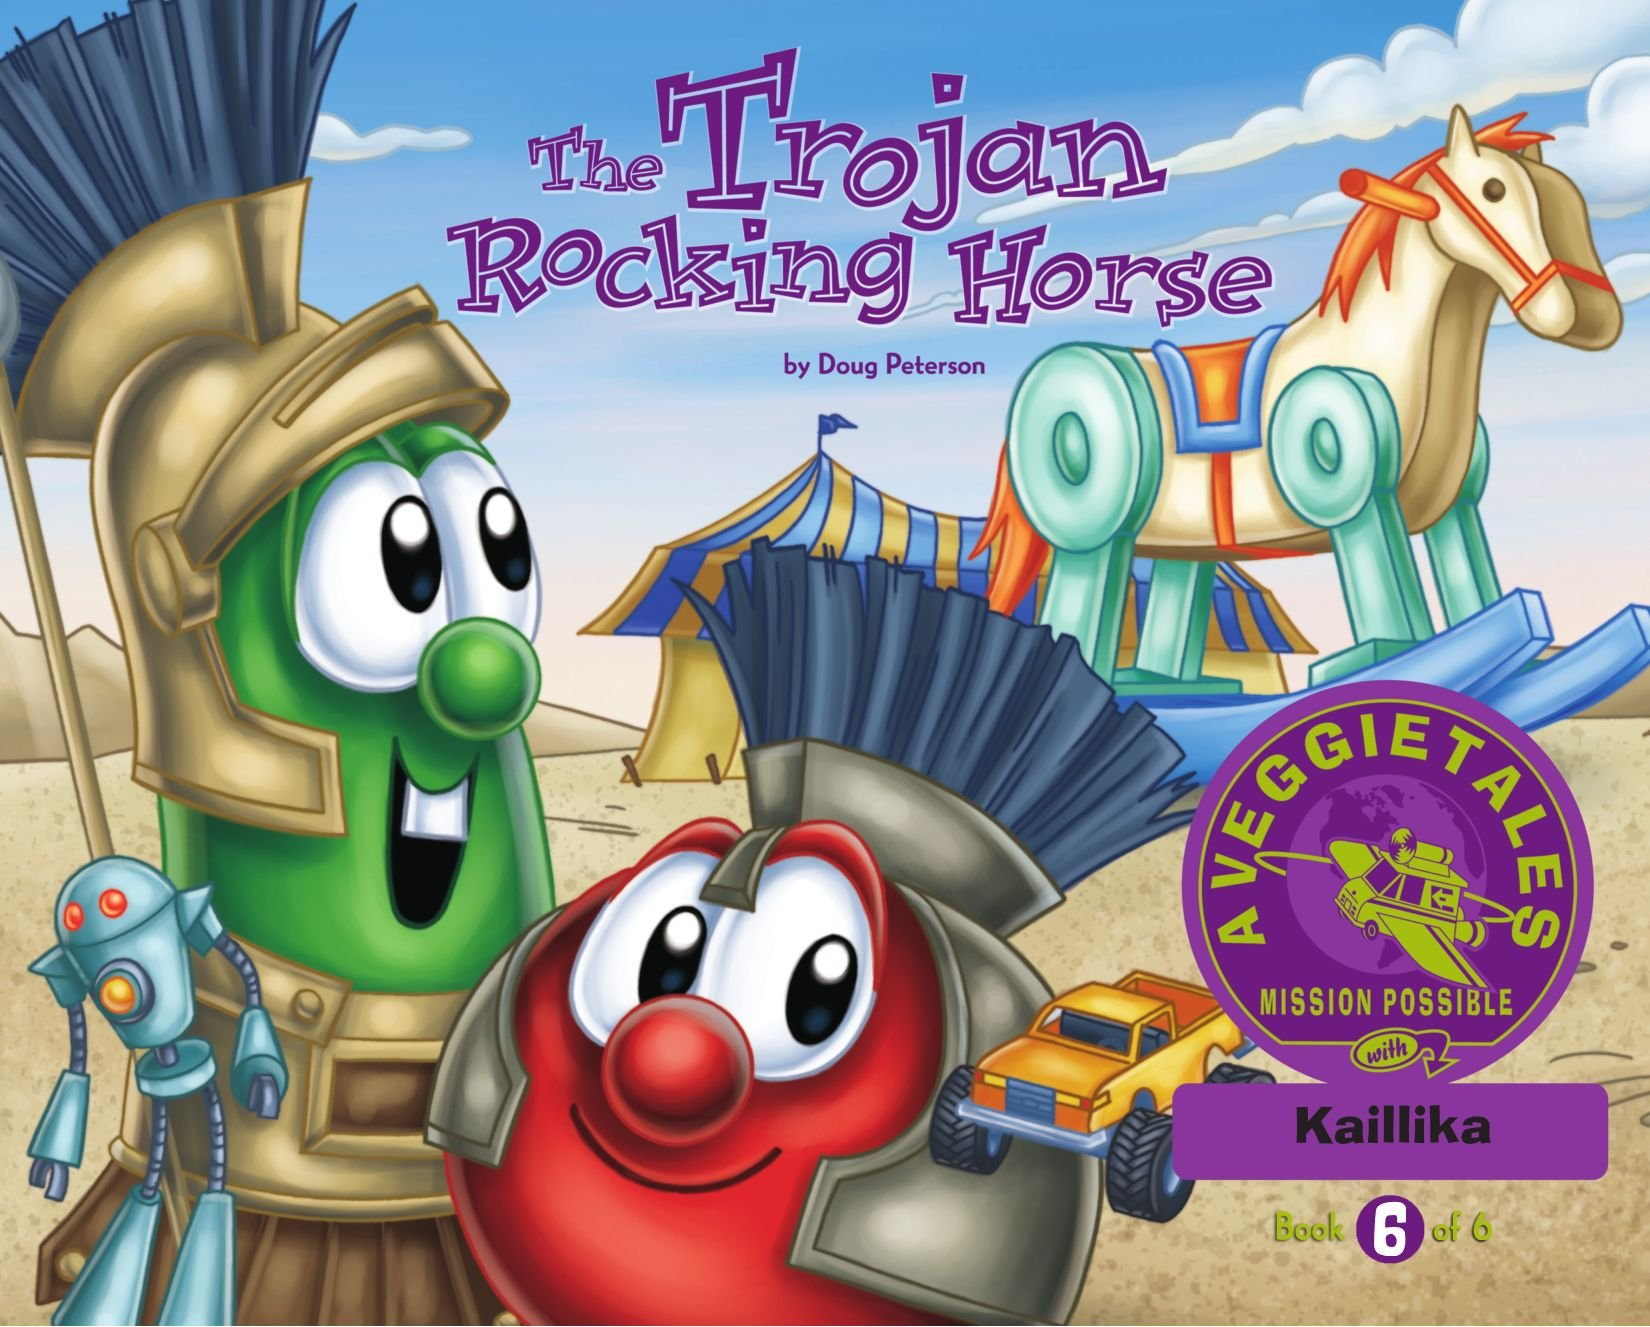 The Trojan Rocking Horse - VeggieTales Mission Possible Adventure Series #6: Personalized for Kaillika (Girl) PDF